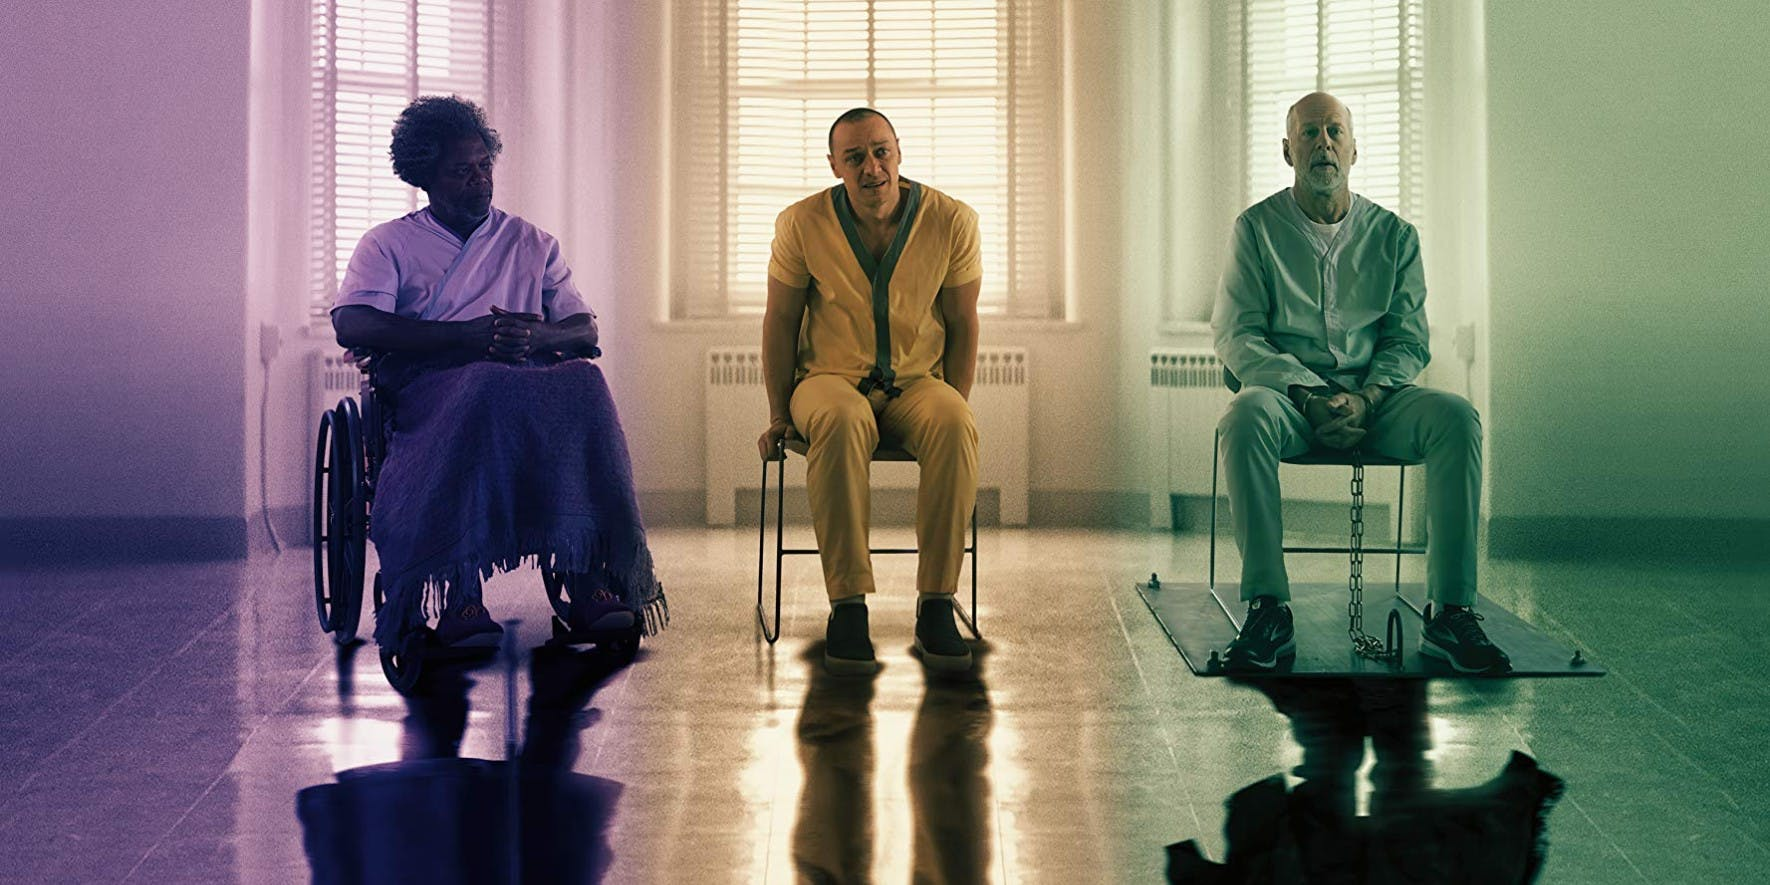 'Glass' review: Comic book tropes for better or worse